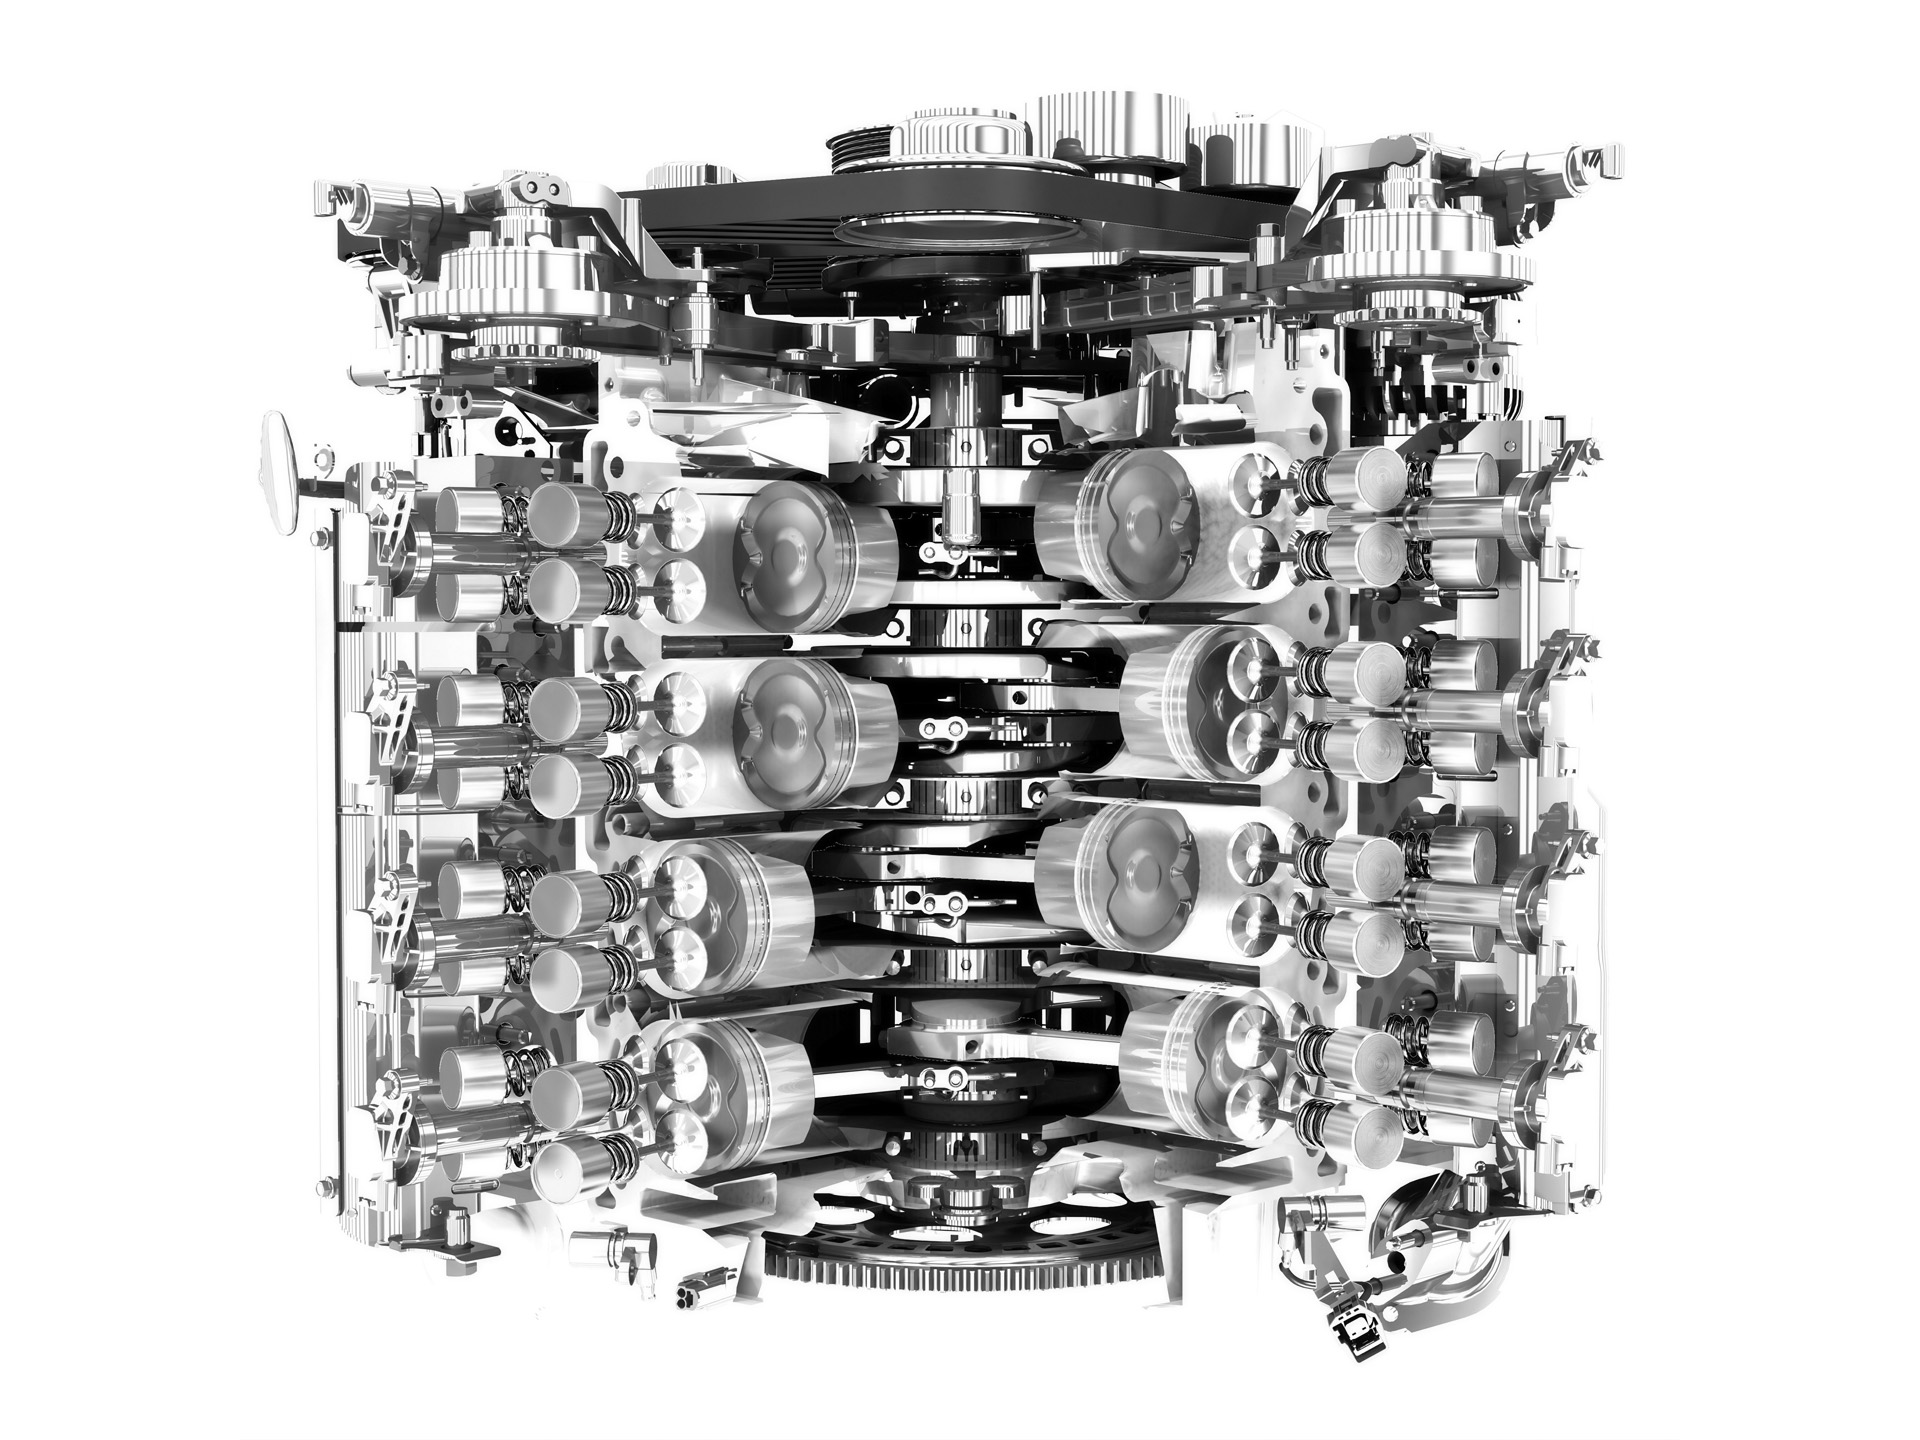 Sample P240a Engine